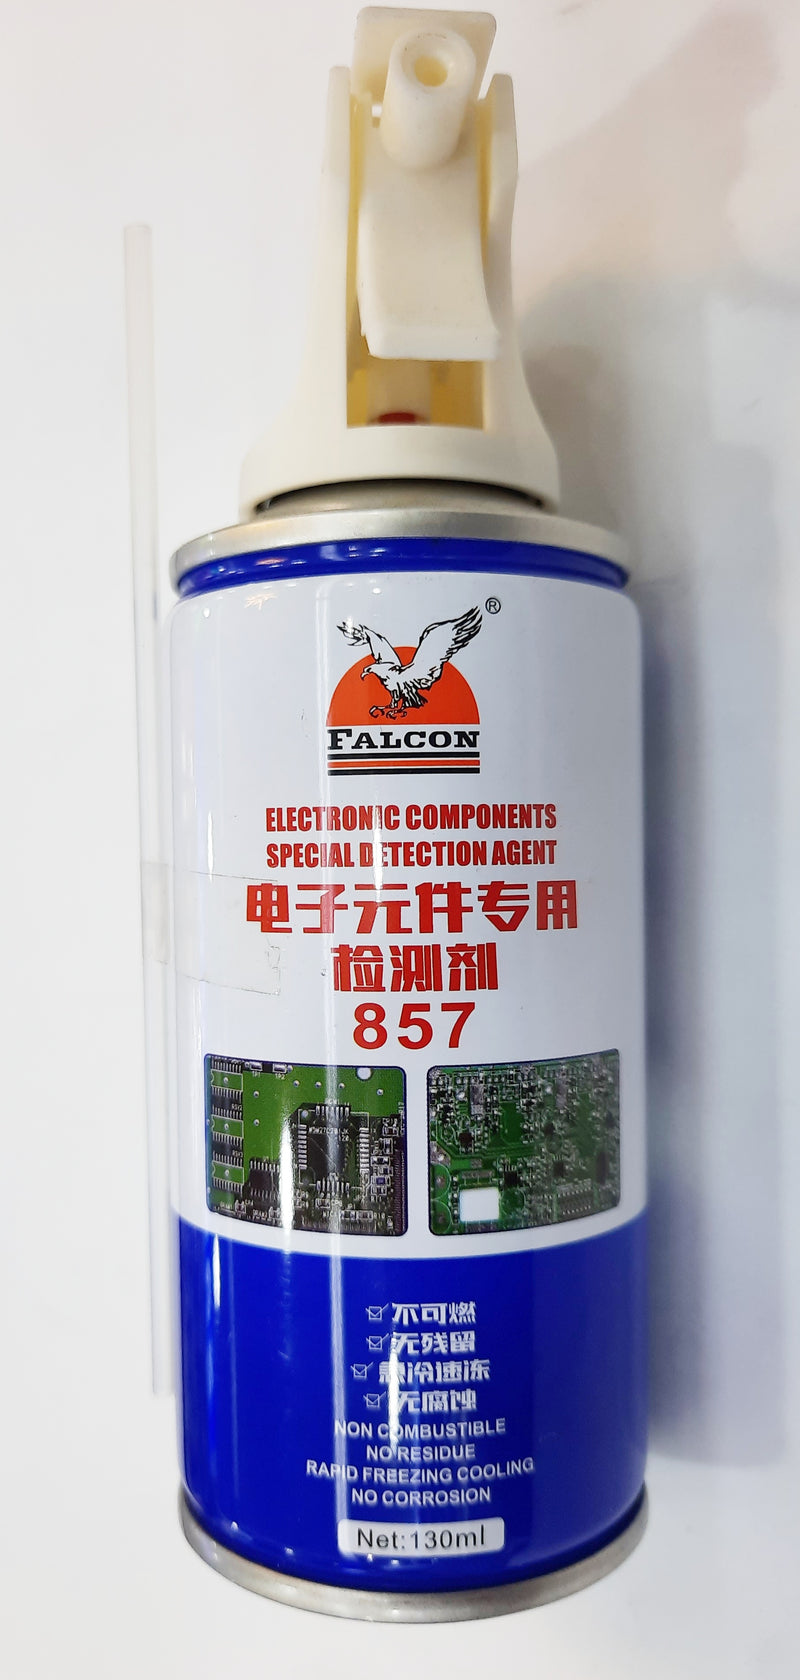 Electronic Components Special Detection Agent - Falcon 857